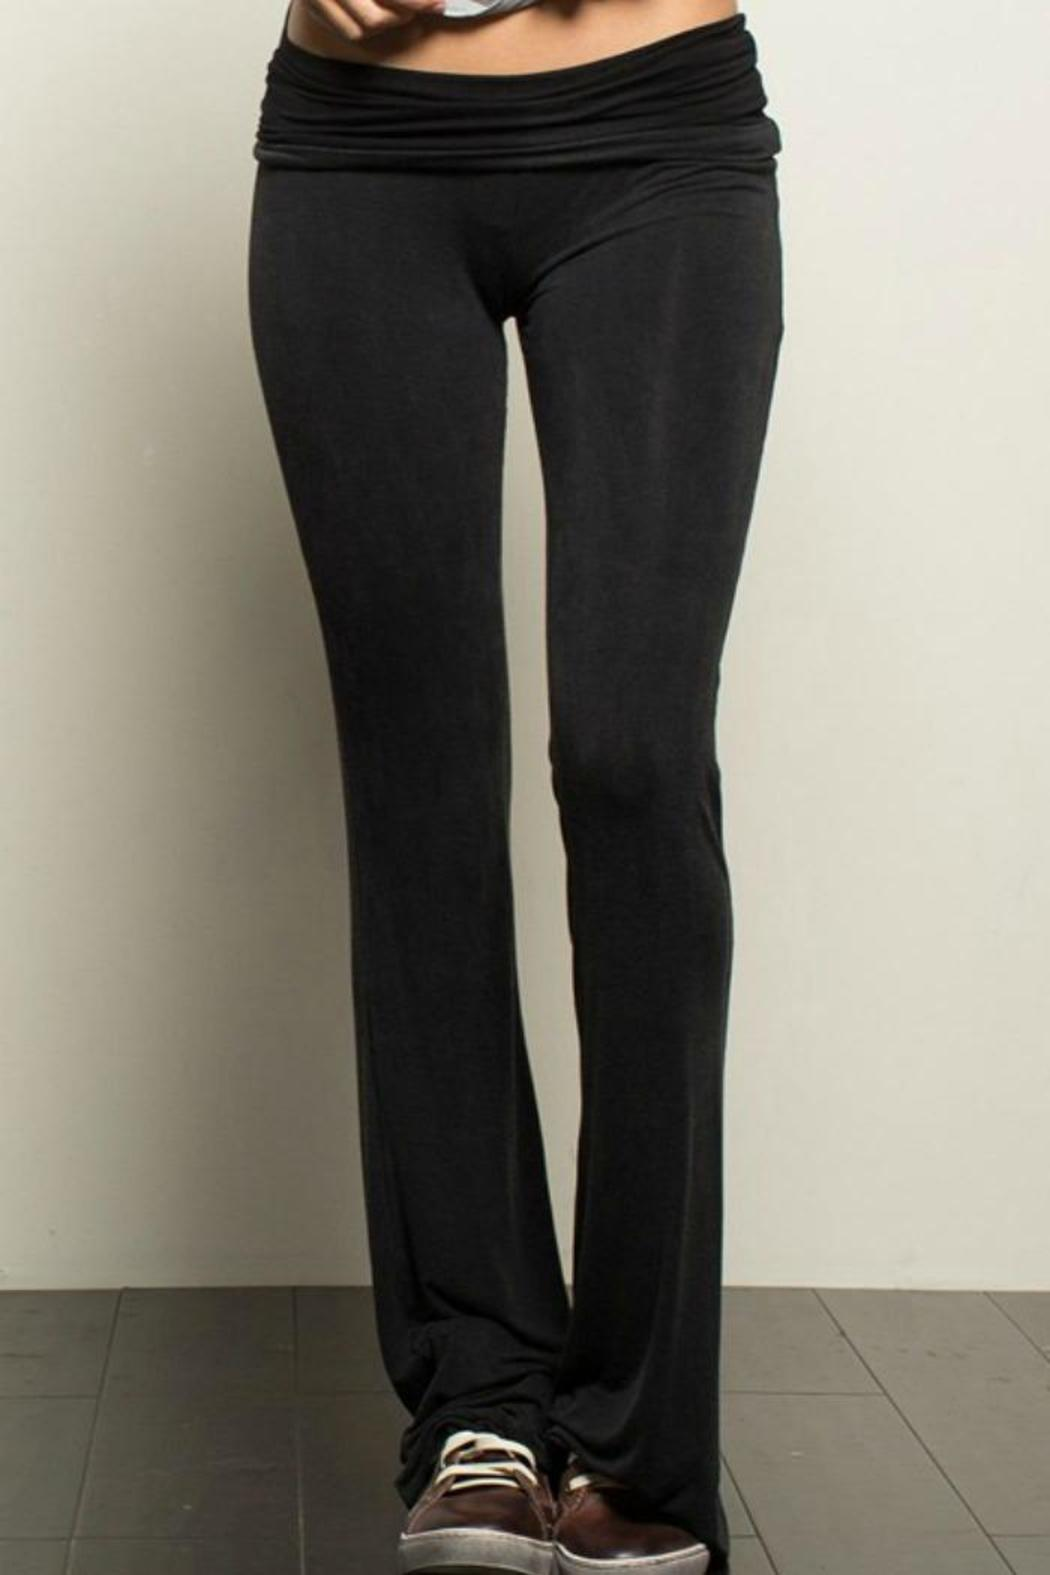 Pol Black Yoga Pants From New Jersey By Fly Girl Boutique